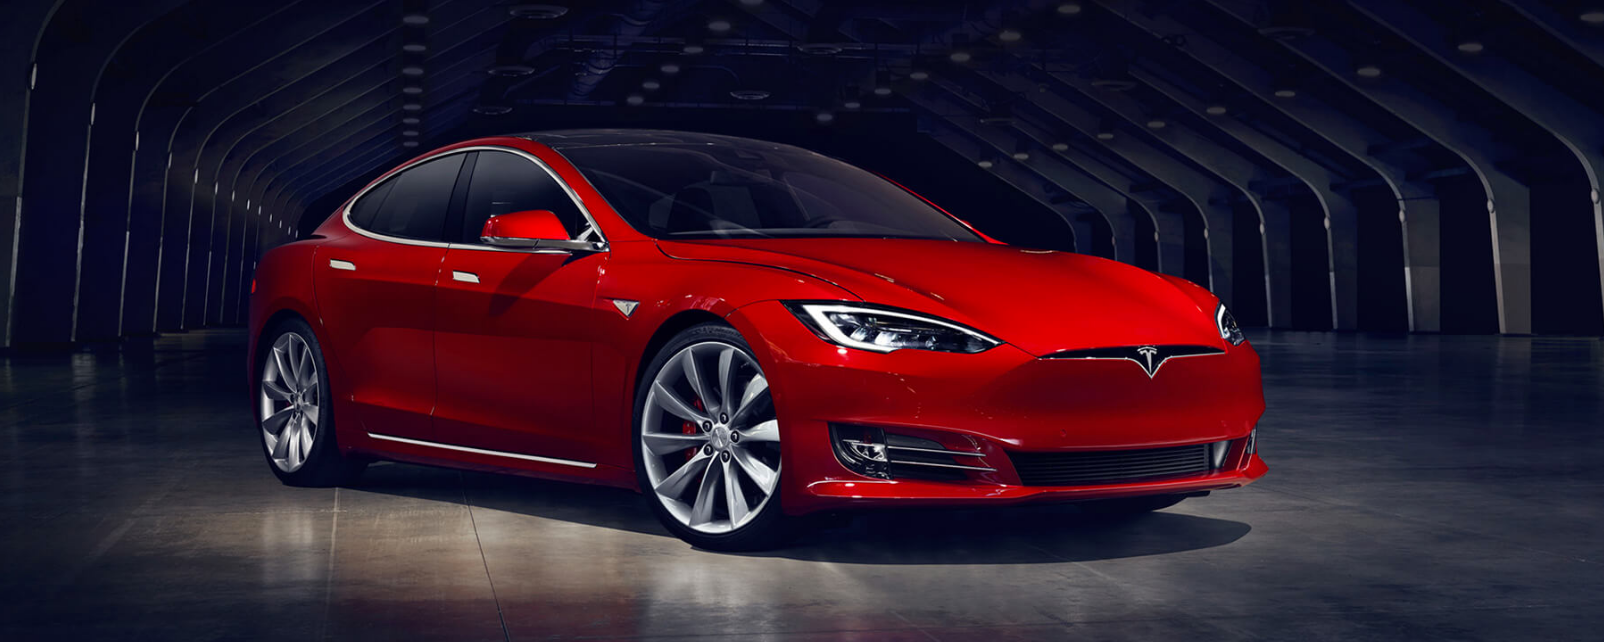 Tesla Model S and X Electric Cars Set for Big Battery and Interior Upgrades